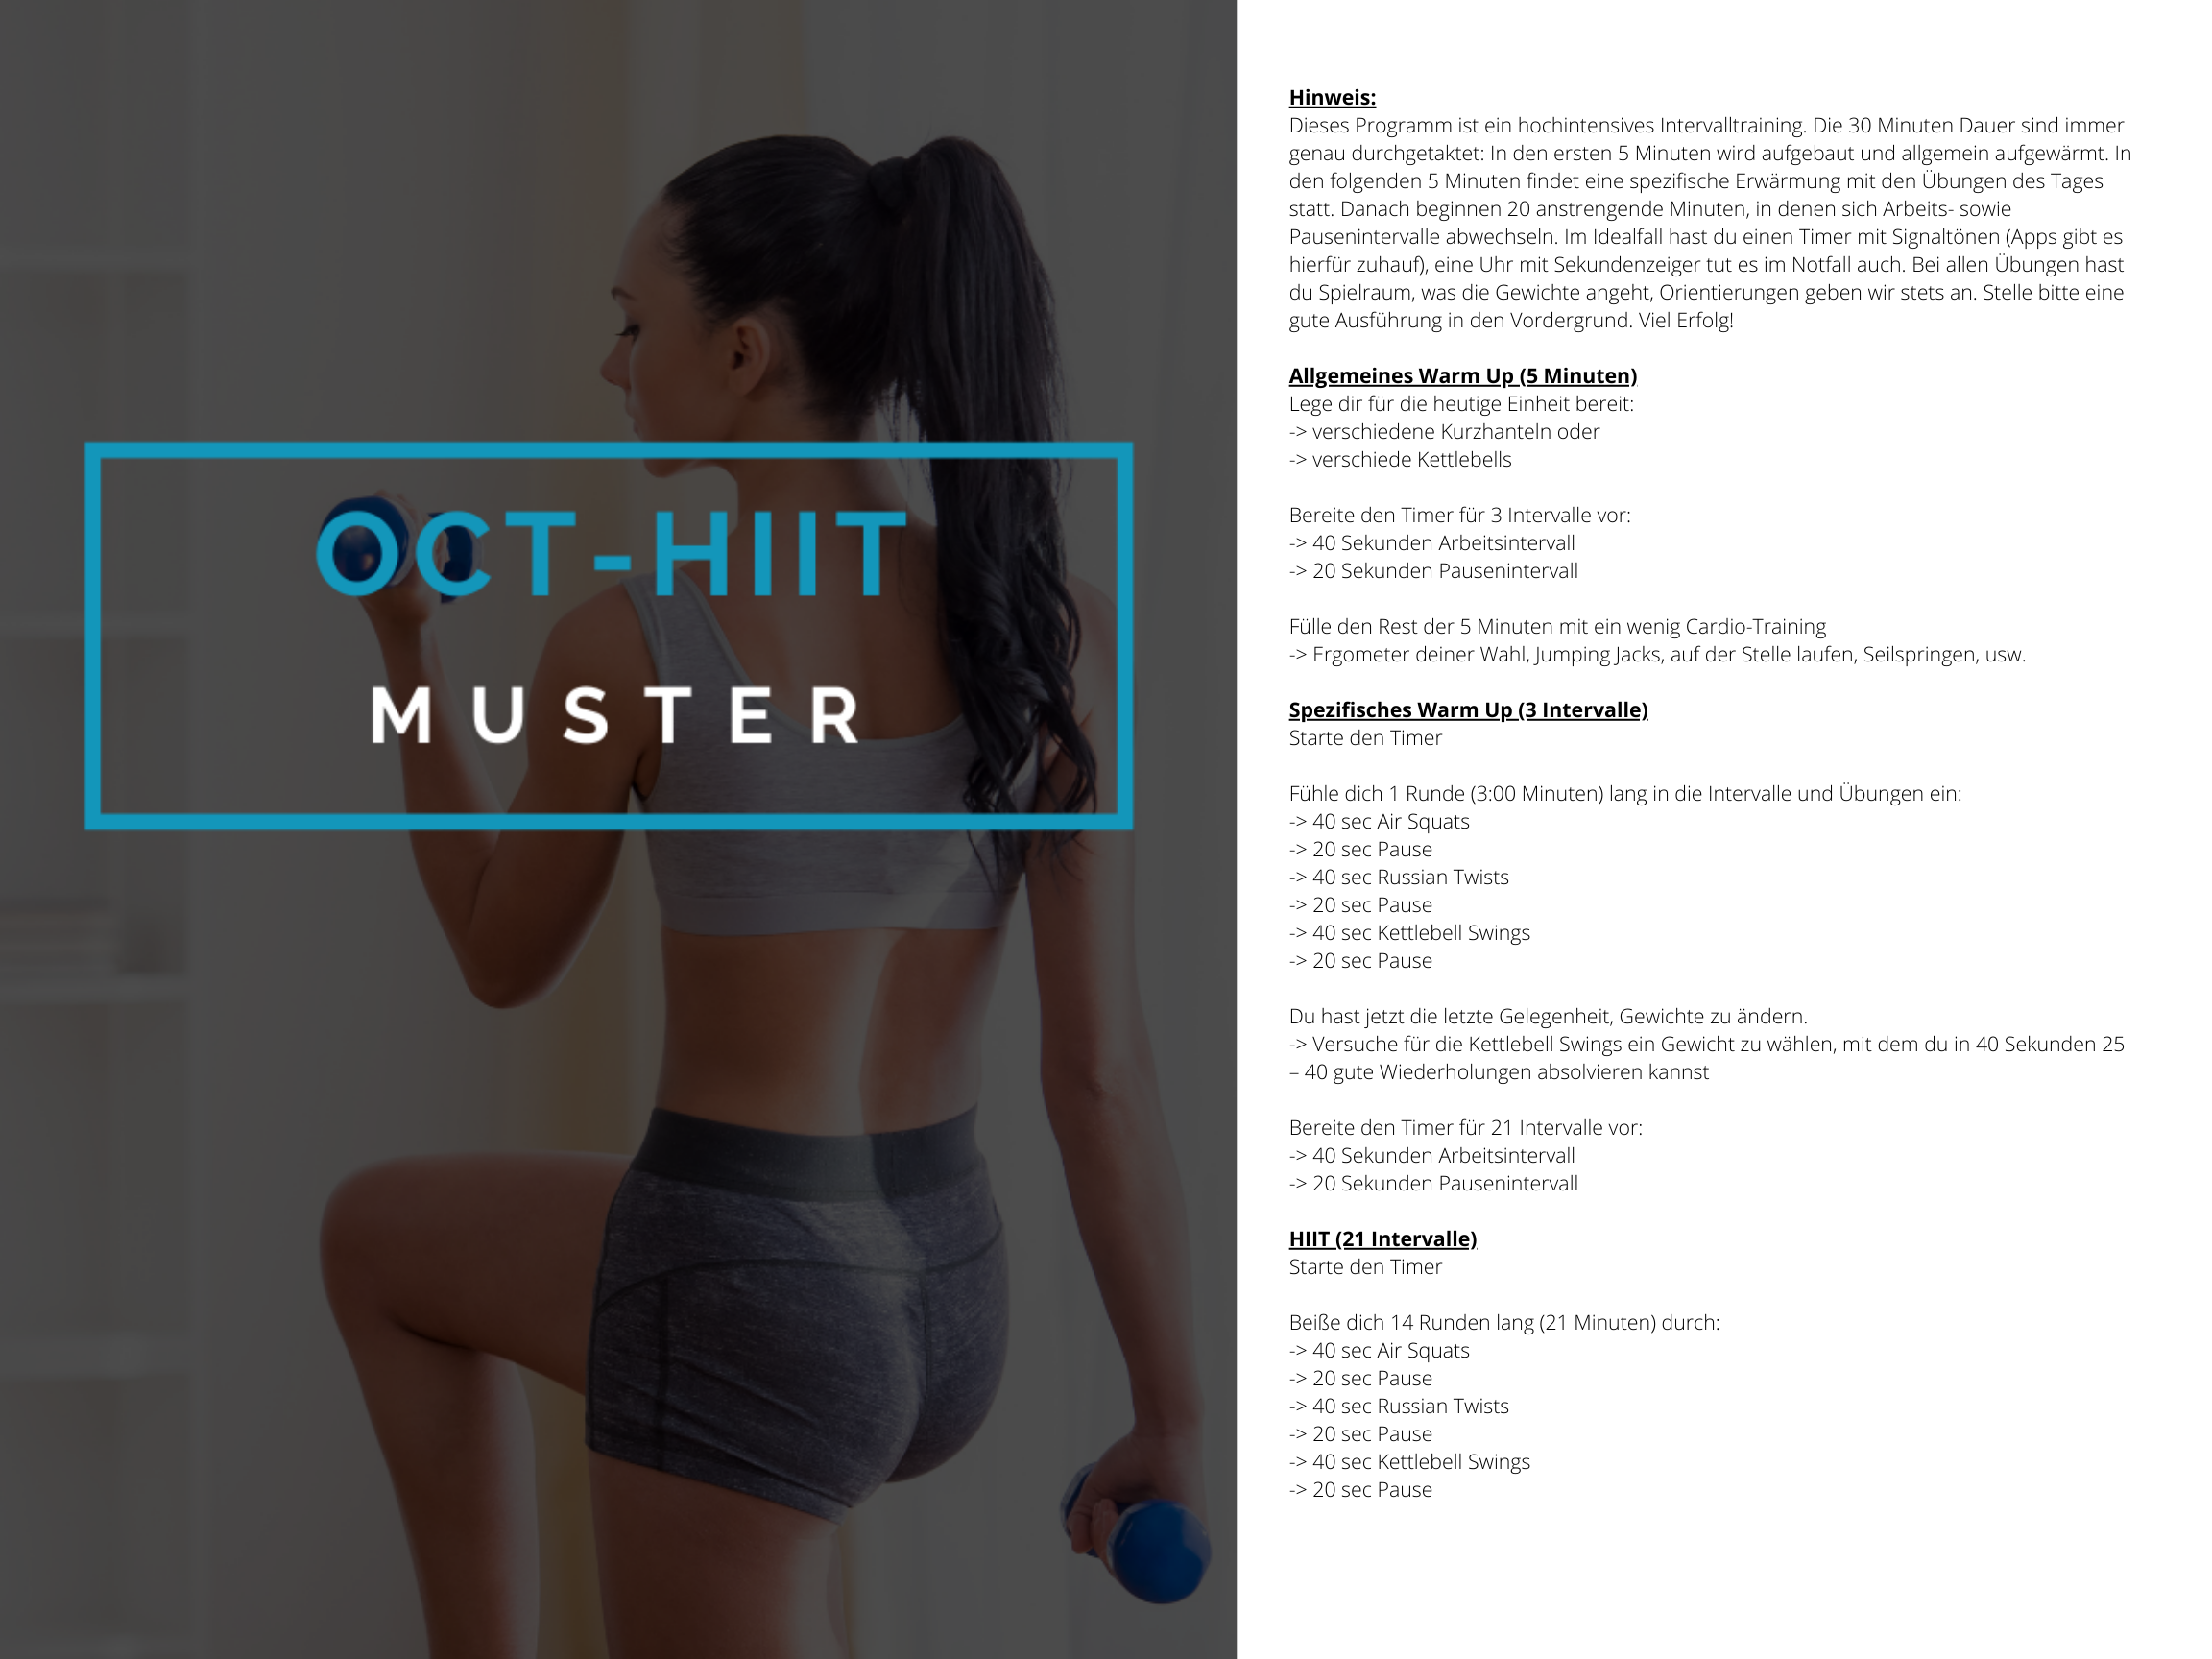 OCT-HIIT Muster Trainingsplan 3